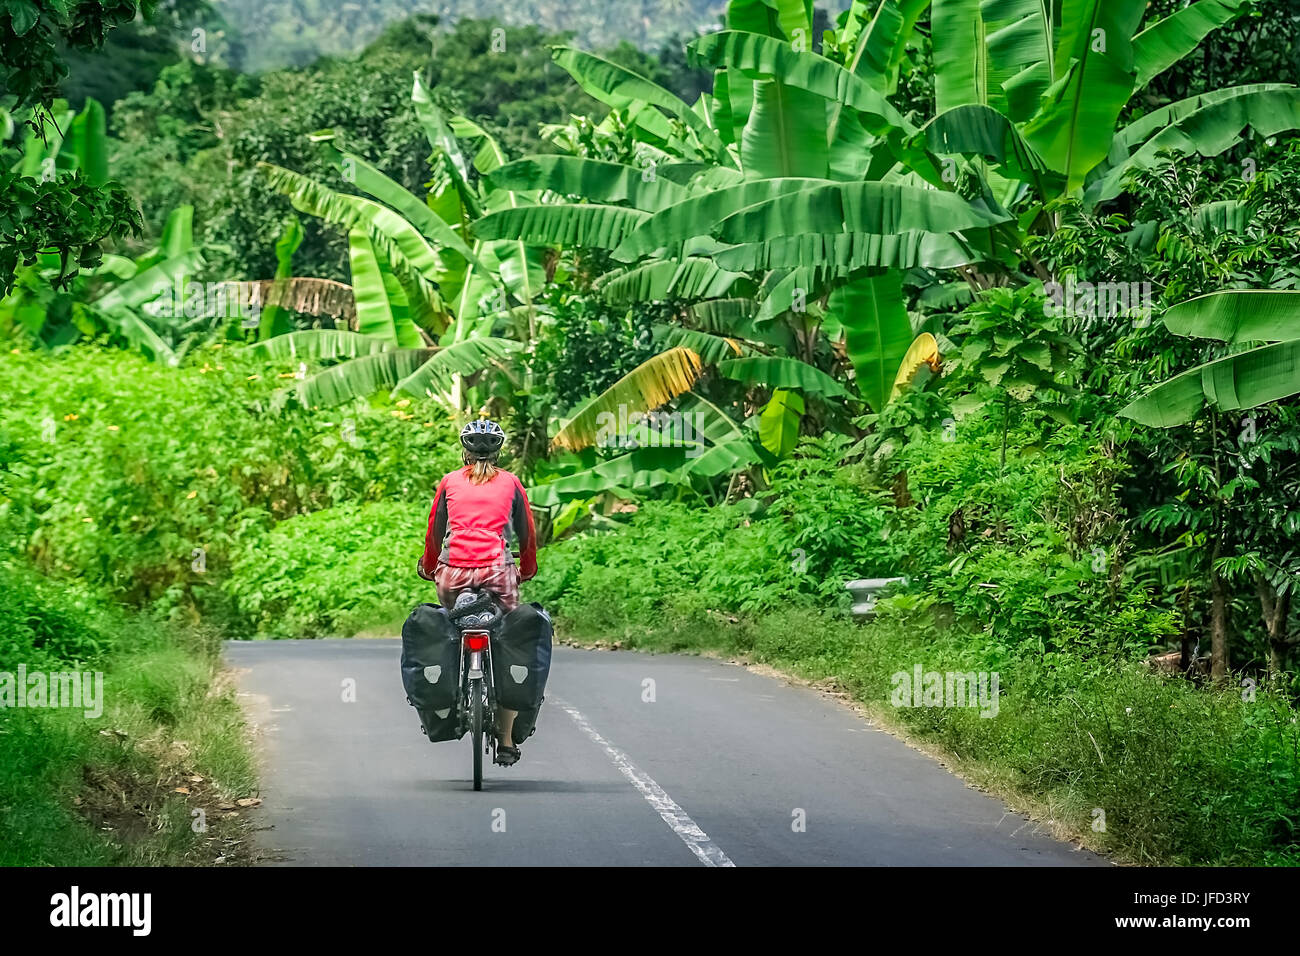 Female cyclist cycling through tropics in Lombok, Indonesia - Stock Image